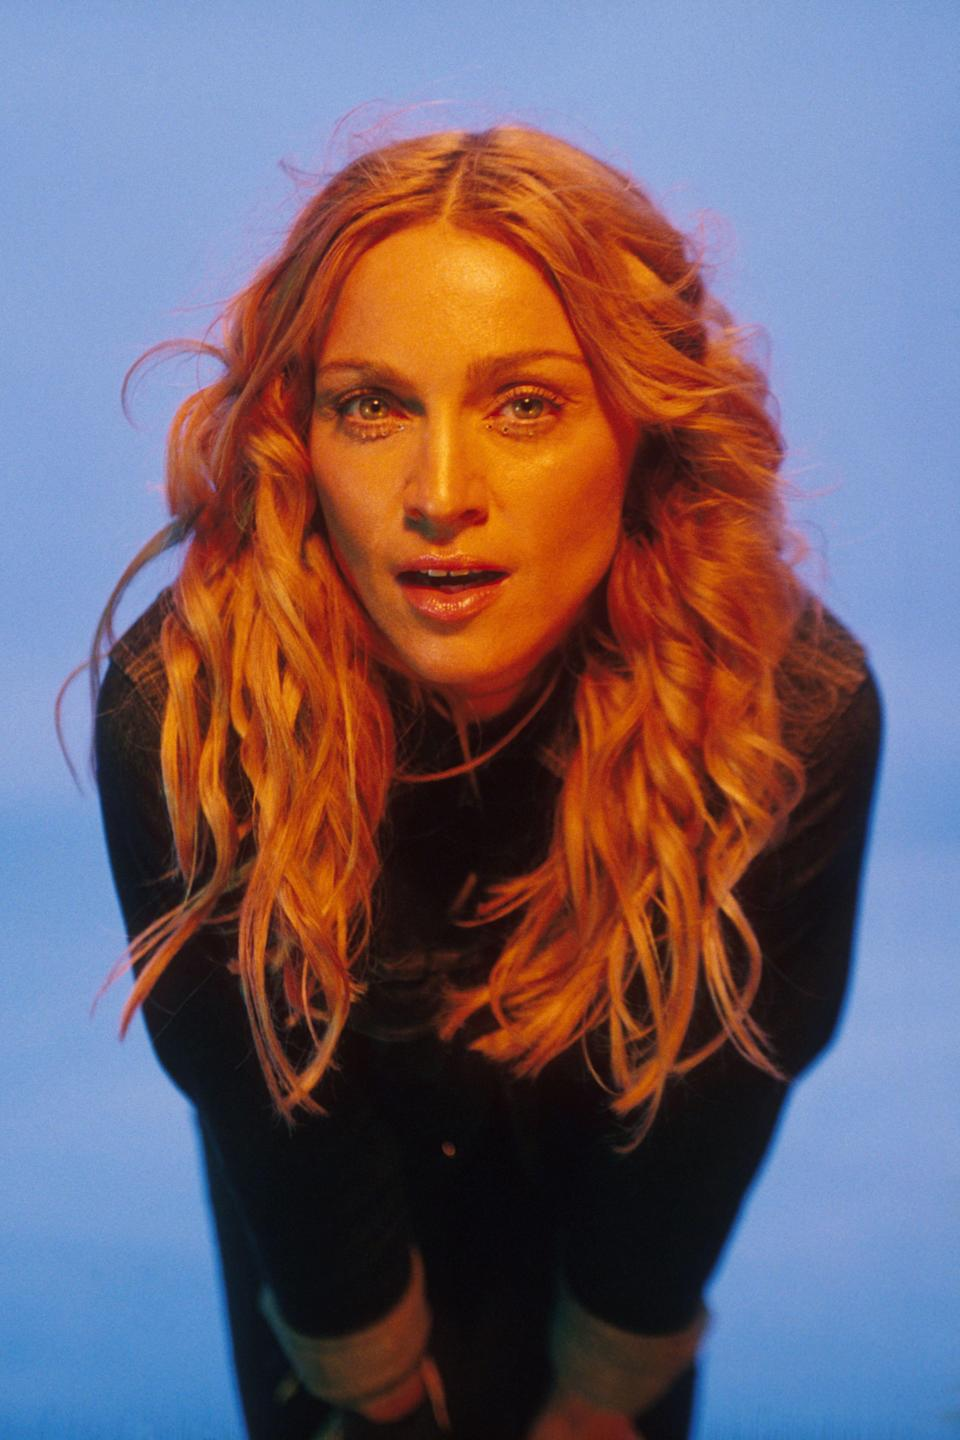 """<p>Radical reinvention number we-lost-count: 1998 <em>Ray of Light</em> Madonna. The single, 40-year-old new mom (to Lourdes) dropped her most personal and sonically innovative album, in which she muses about motherhood, fame, and the devastating, early death of her own namesake mother — all grounded in a new spiritual outlook inspired by <a href=""""https://www.ibtimes.co.uk/kabbalah-strange-ancient-jewish-mysticism-that-madonna-popularised-1507927"""" rel=""""nofollow noopener"""" target=""""_blank"""" data-ylk=""""slk:her immersion in Kabbalah"""" class=""""link rapid-noclick-resp"""">her immersion in Kabbalah</a>, an ancient, mystical form of Judaism. (Side note: her Botticelli beach hair! Her dewy skin!)</p><p>""""It's a belief system that gives you tools to deal with life. Many of its principles resemble concepts in Christianity or in Buddhism,"""" <a href=""""http://www.oprah.com/omagazine/oprah-interviews-madonna/all"""" rel=""""nofollow noopener"""" target=""""_blank"""" data-ylk=""""slk:Madonna explained to Oprah Winfrey in 2005"""" class=""""link rapid-noclick-resp"""">Madonna explained to Oprah Winfrey in 2005</a>. """"I've never felt more creative. One thing I've learned is that I'm not the owner of my talent, I'm the manager of it. And if I learn how to manage my talent correctly — and if I accept that I'm just channeling things that come from God — the talent will keep flowing through me.""""</p><span class=""""copyright"""">Photo: Frank Micelotta Archive/Getty Images.</span>"""